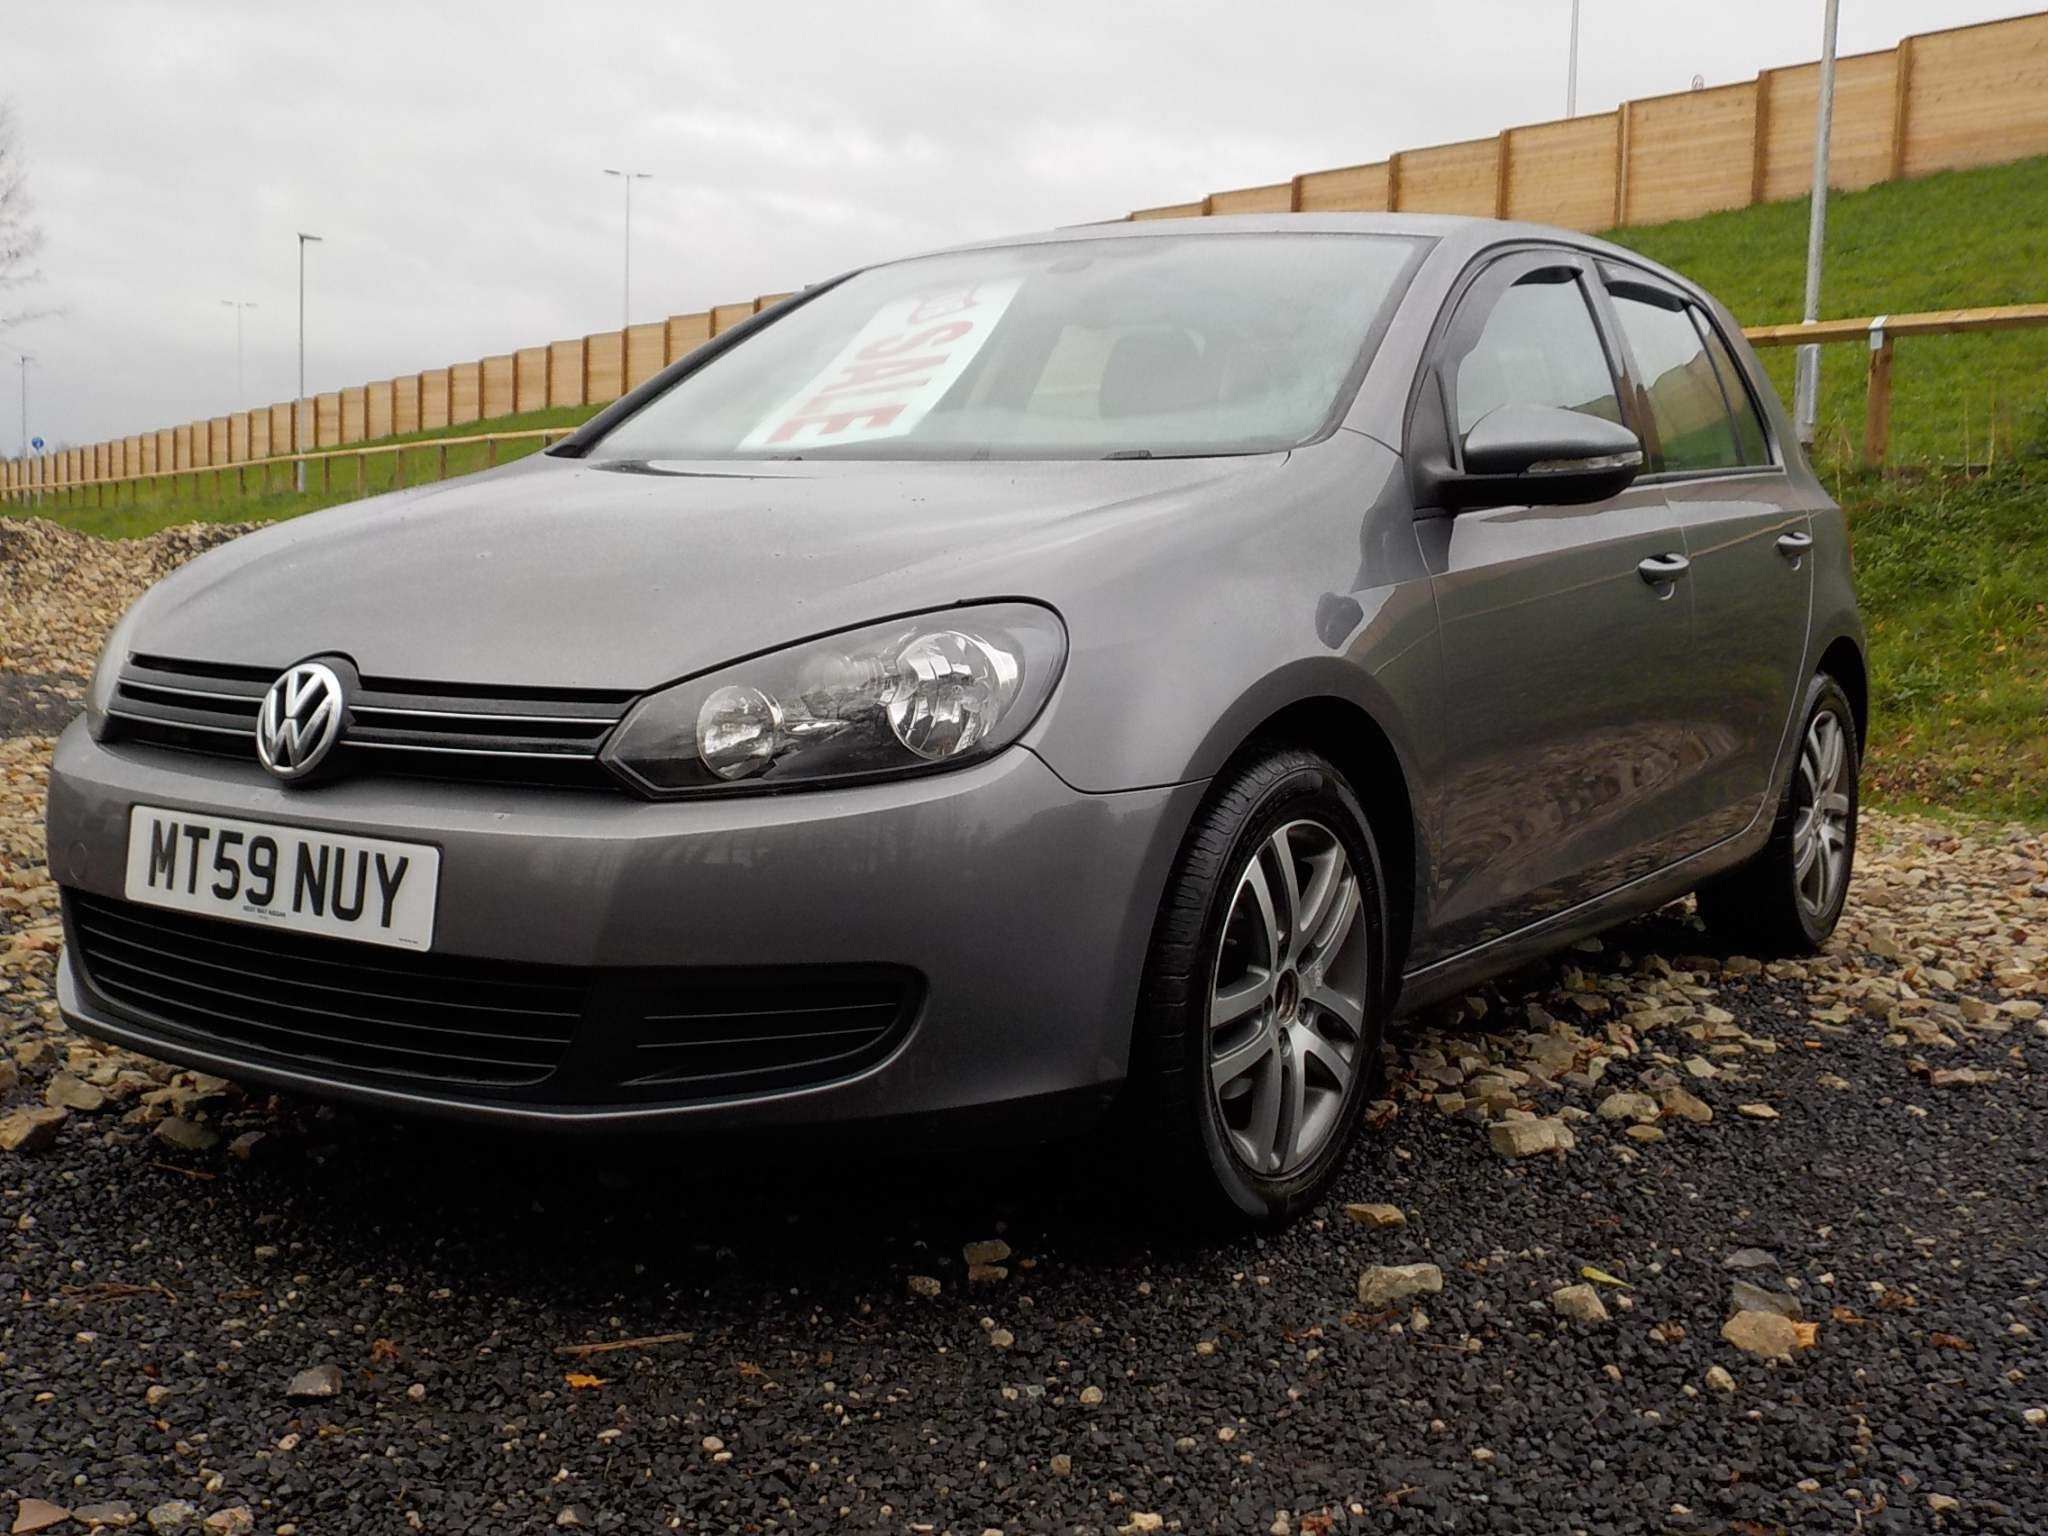 Volkswagen Golf 1.6 TDI BlueMotion Tech SE 5dr